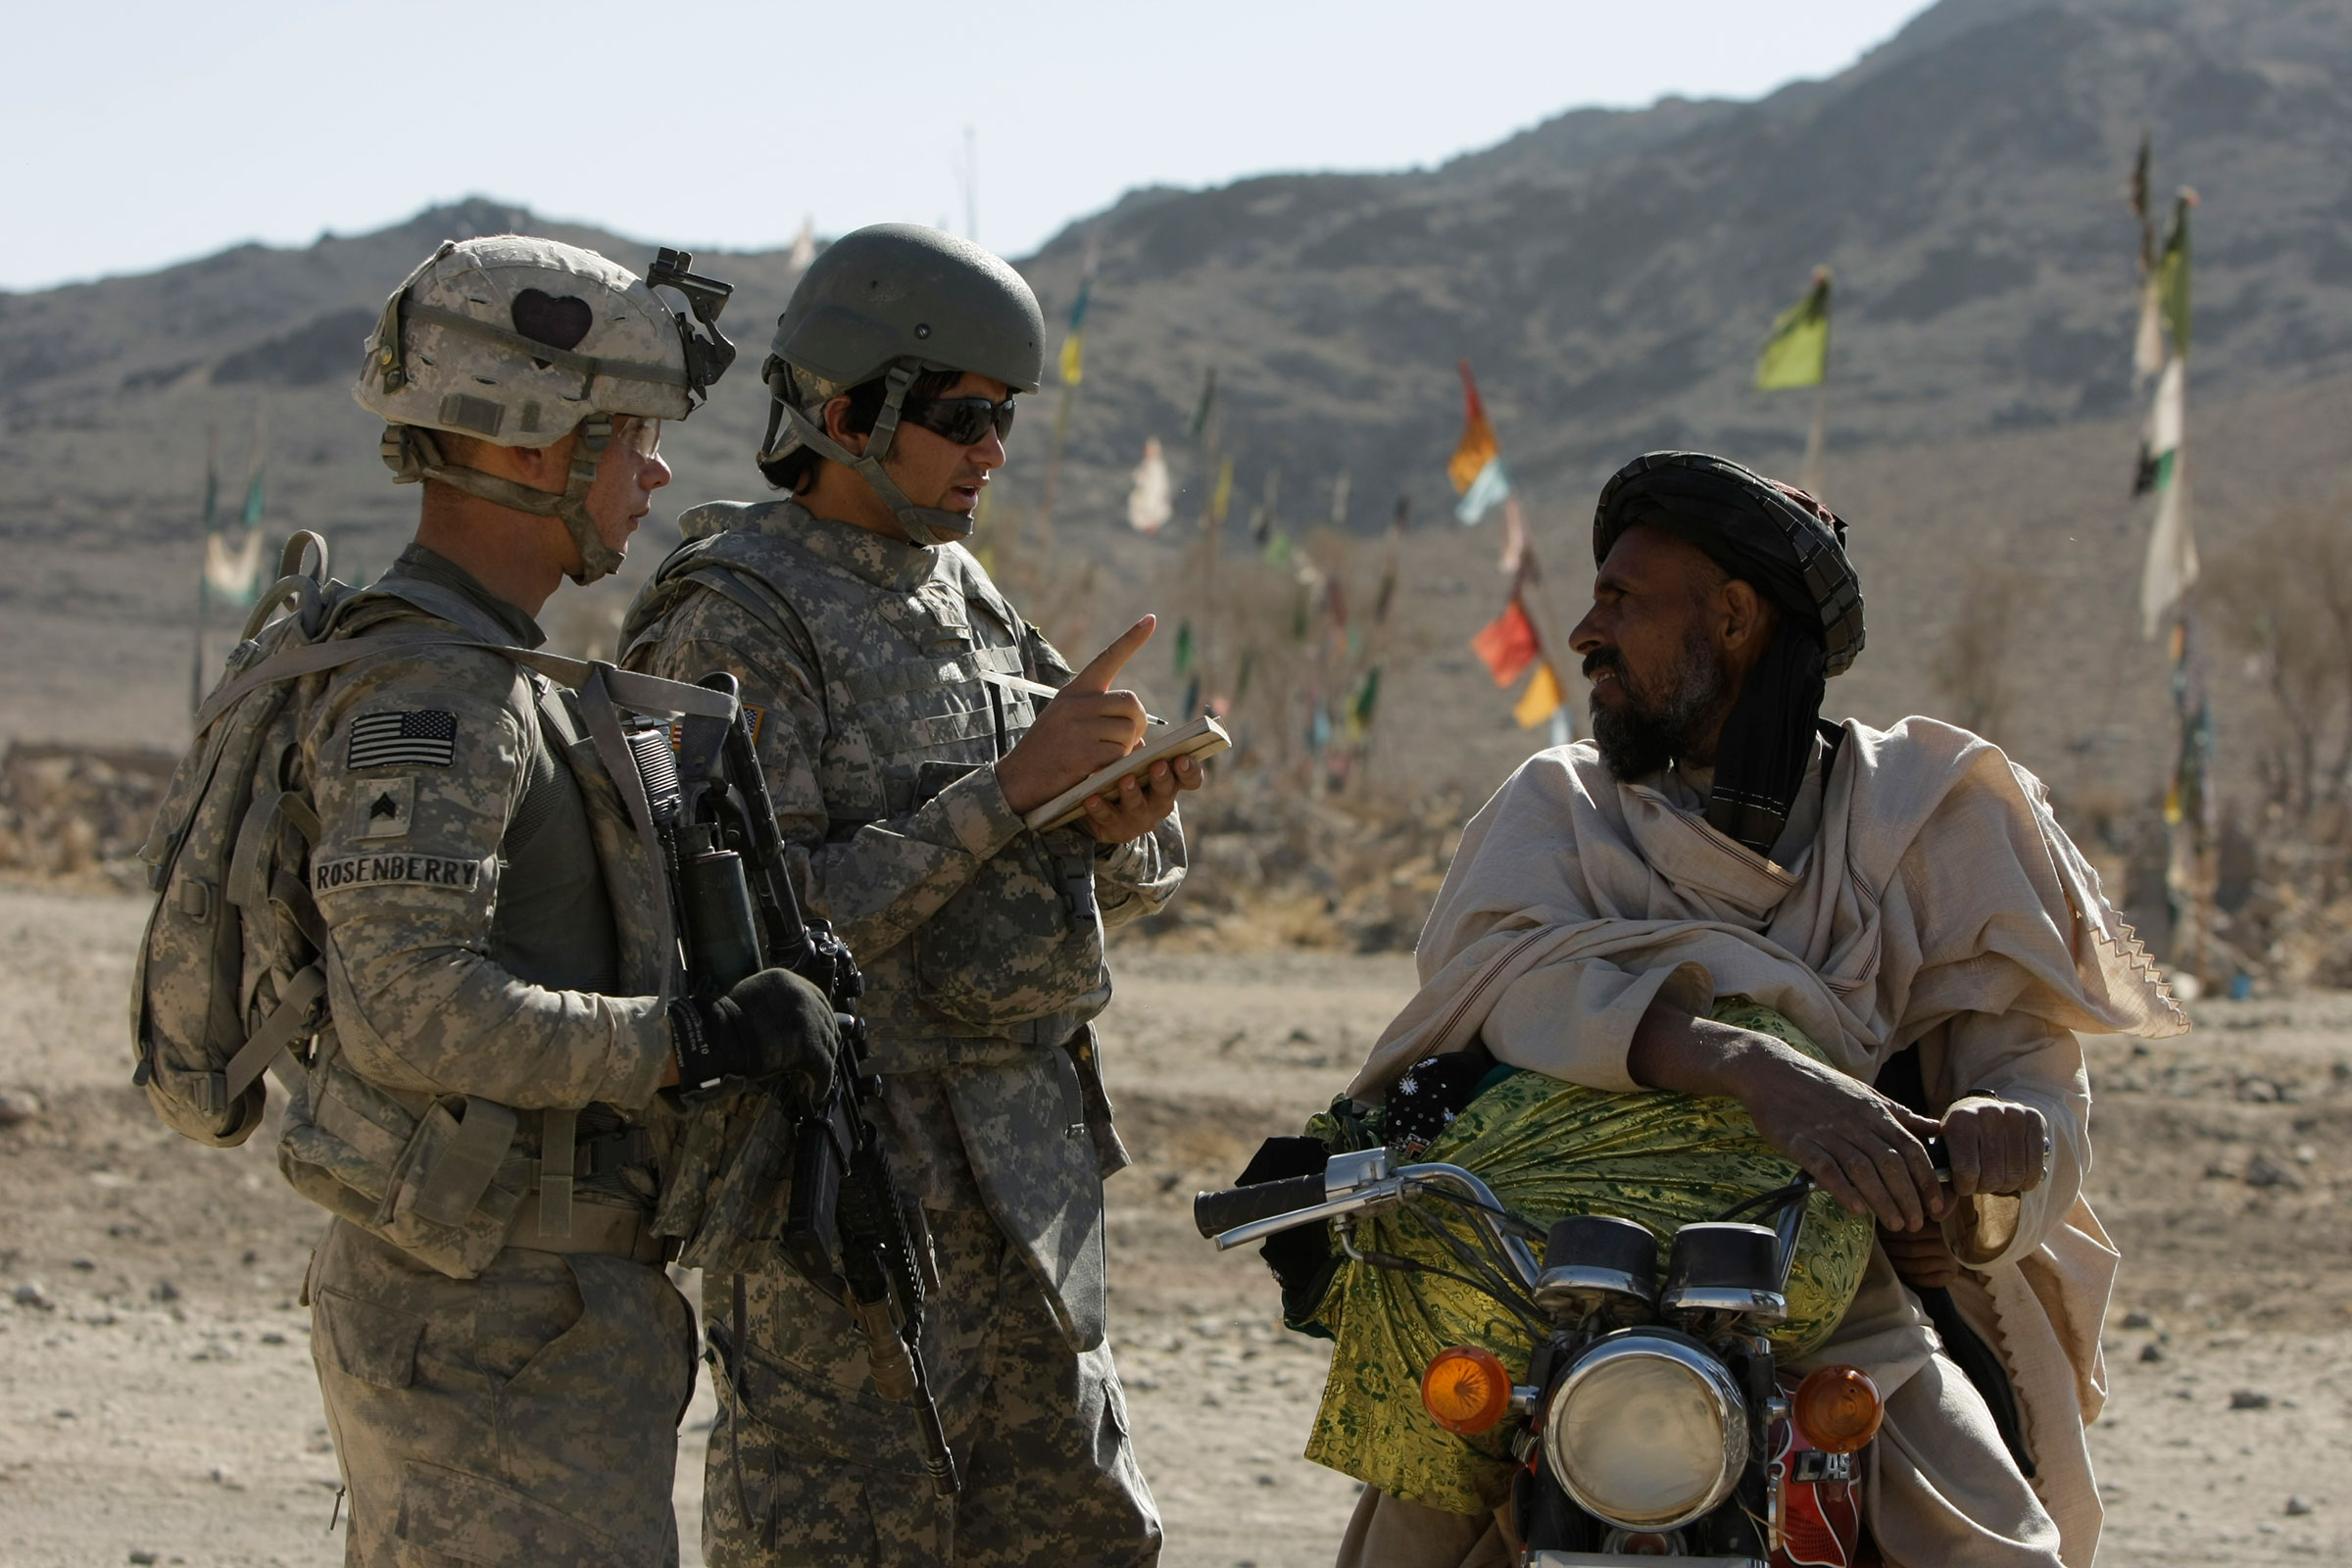 US Army Sgt. Skyler Rosenberry of Pennsylvania, left, and an Afghan interpreter, center, from First Battalion, 502nd Infantry Regiment, 101st Airborne Division speak to an Afghan man during a foot patrol in West Now Ruzi village, district Panjwai, Afghanistan's Kandahar province, Wednesday, Nov. 24, 2010.